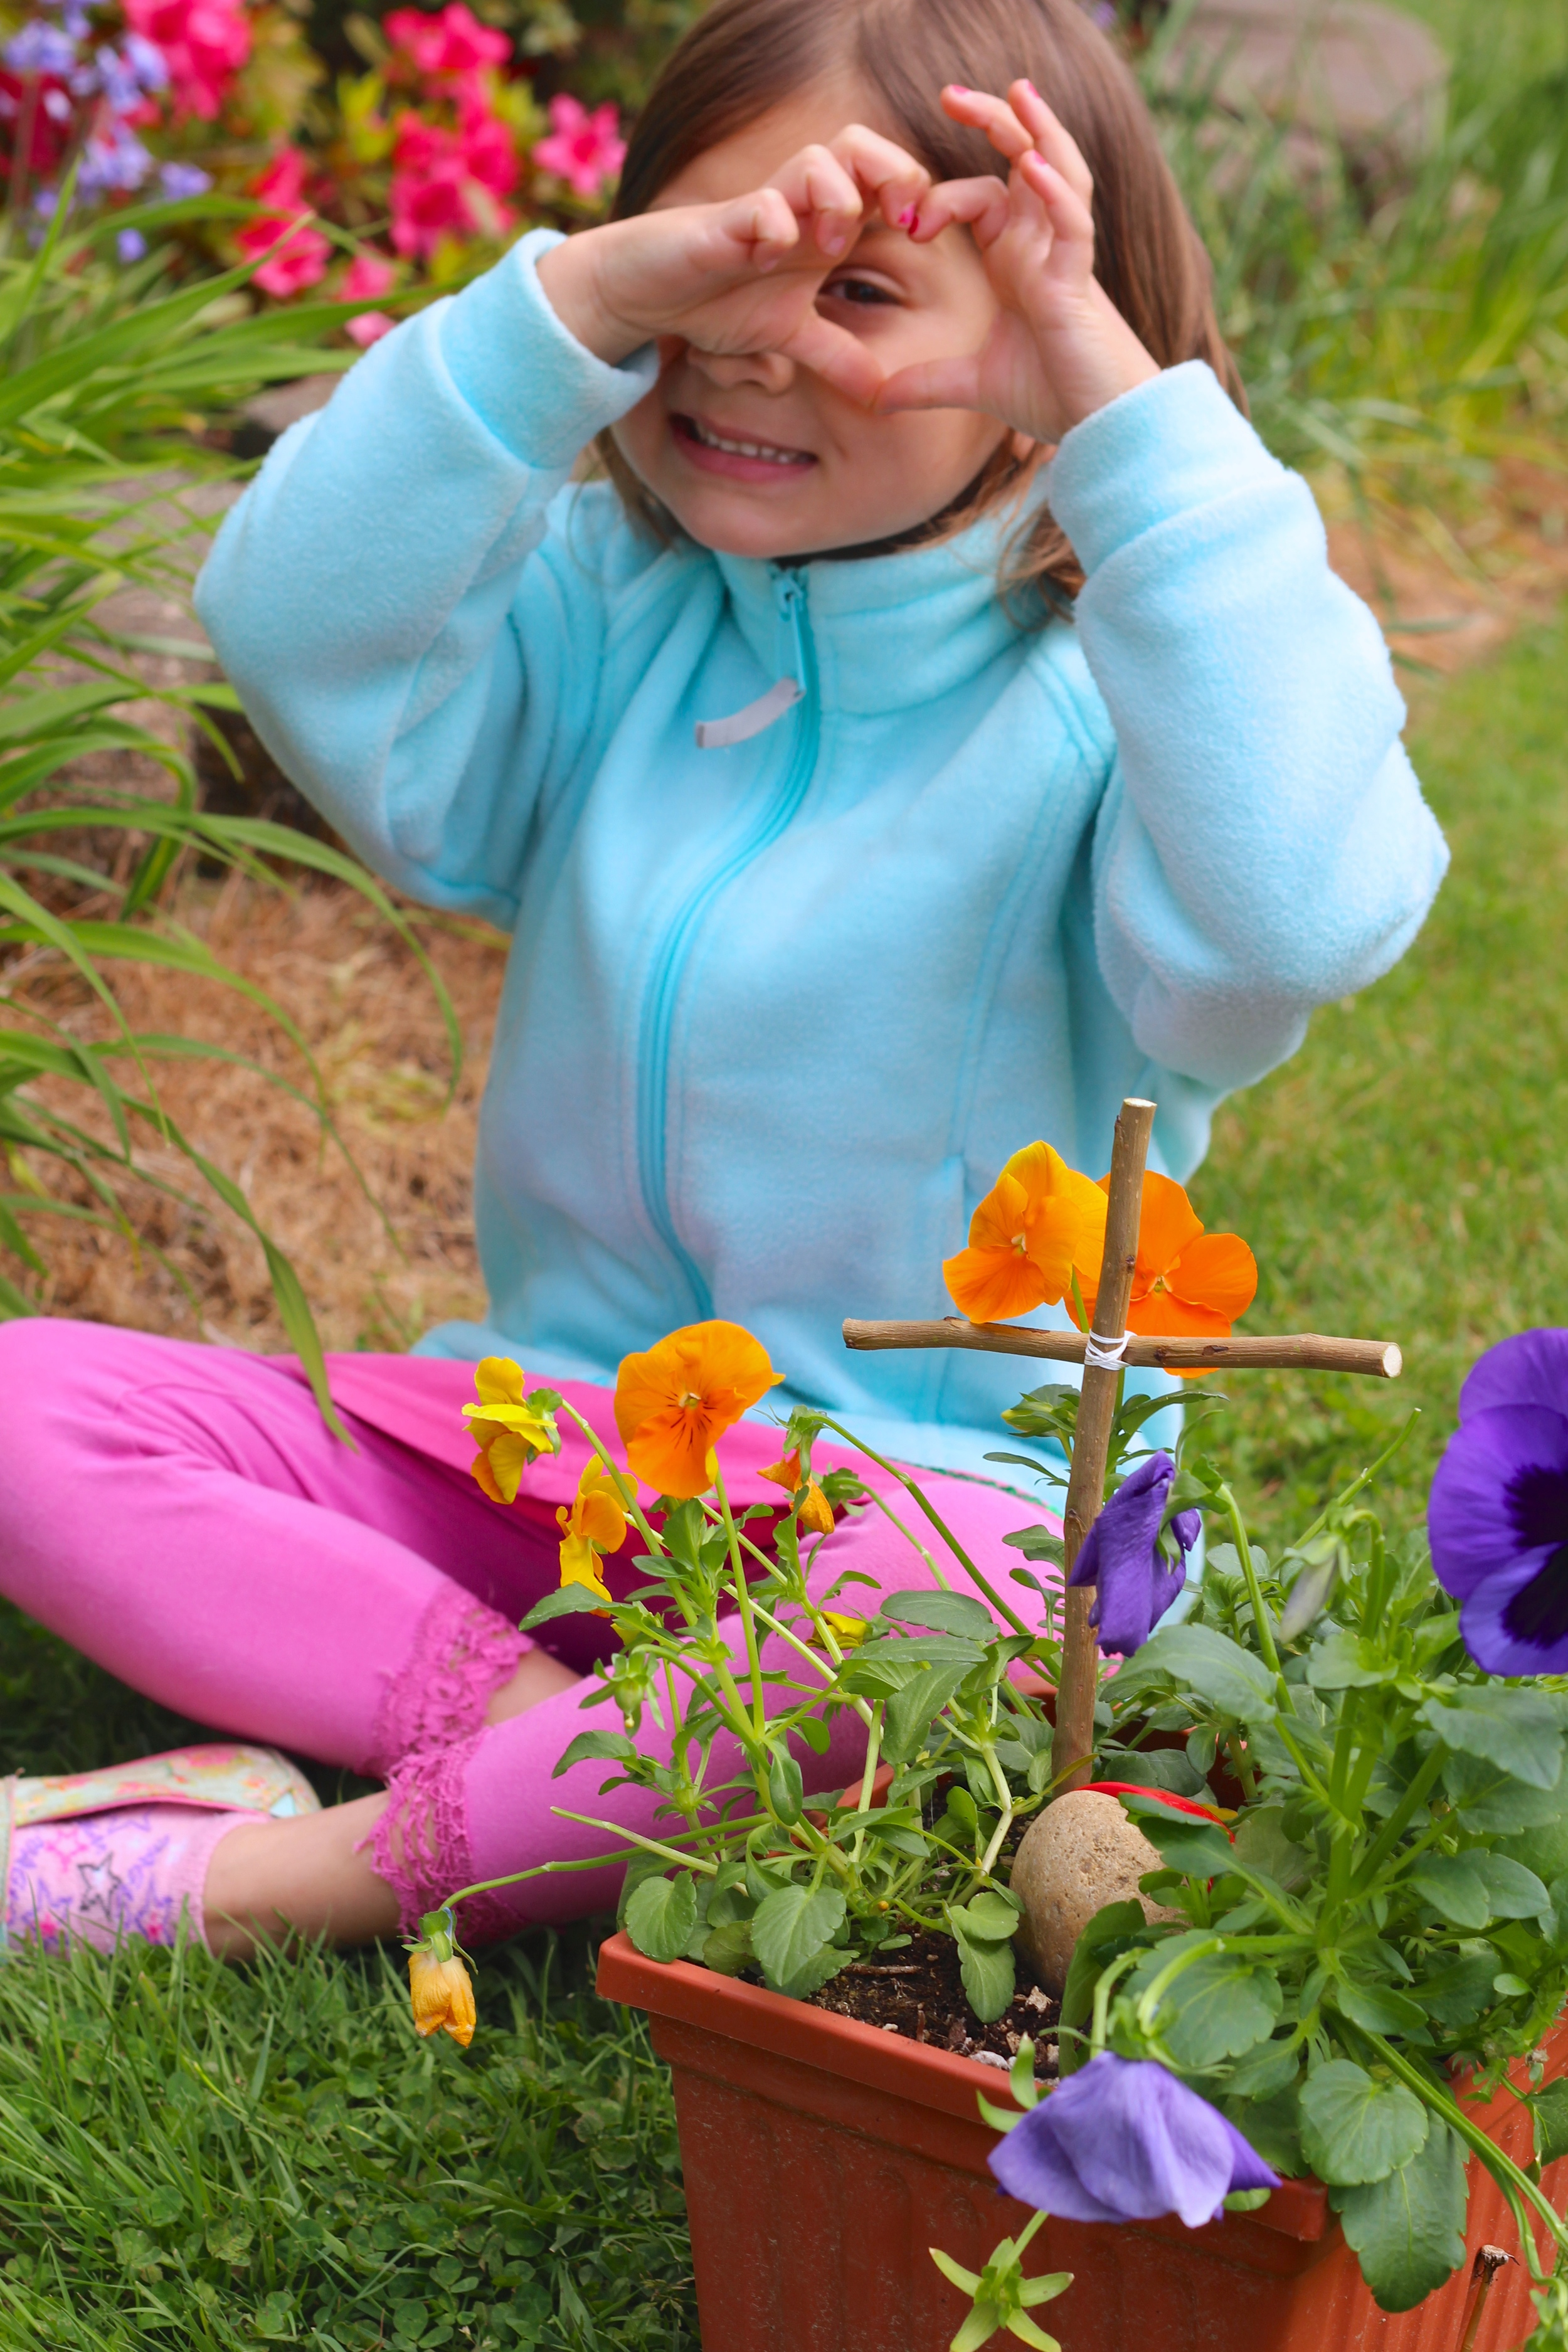 My daughter with herlittle Easter garden project